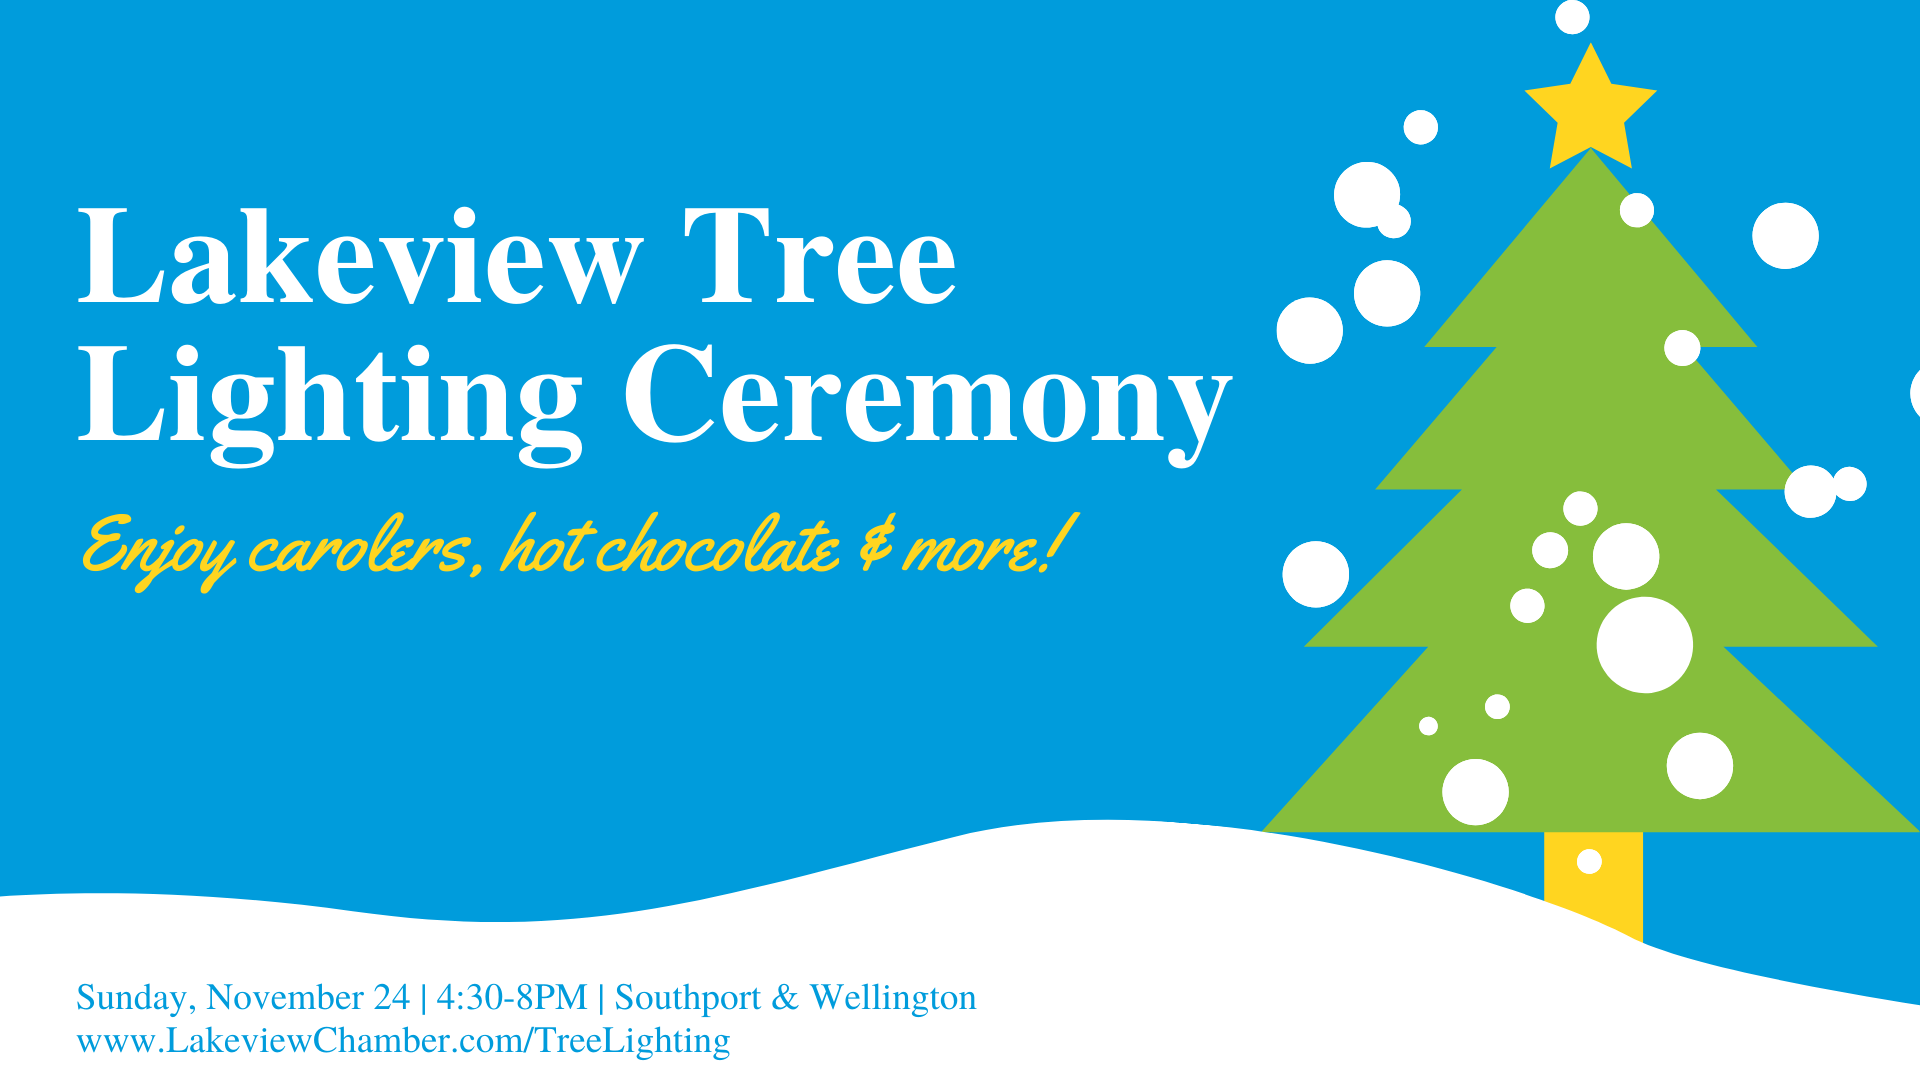 Lakeview-Tree-Lighting-Ceremony.png